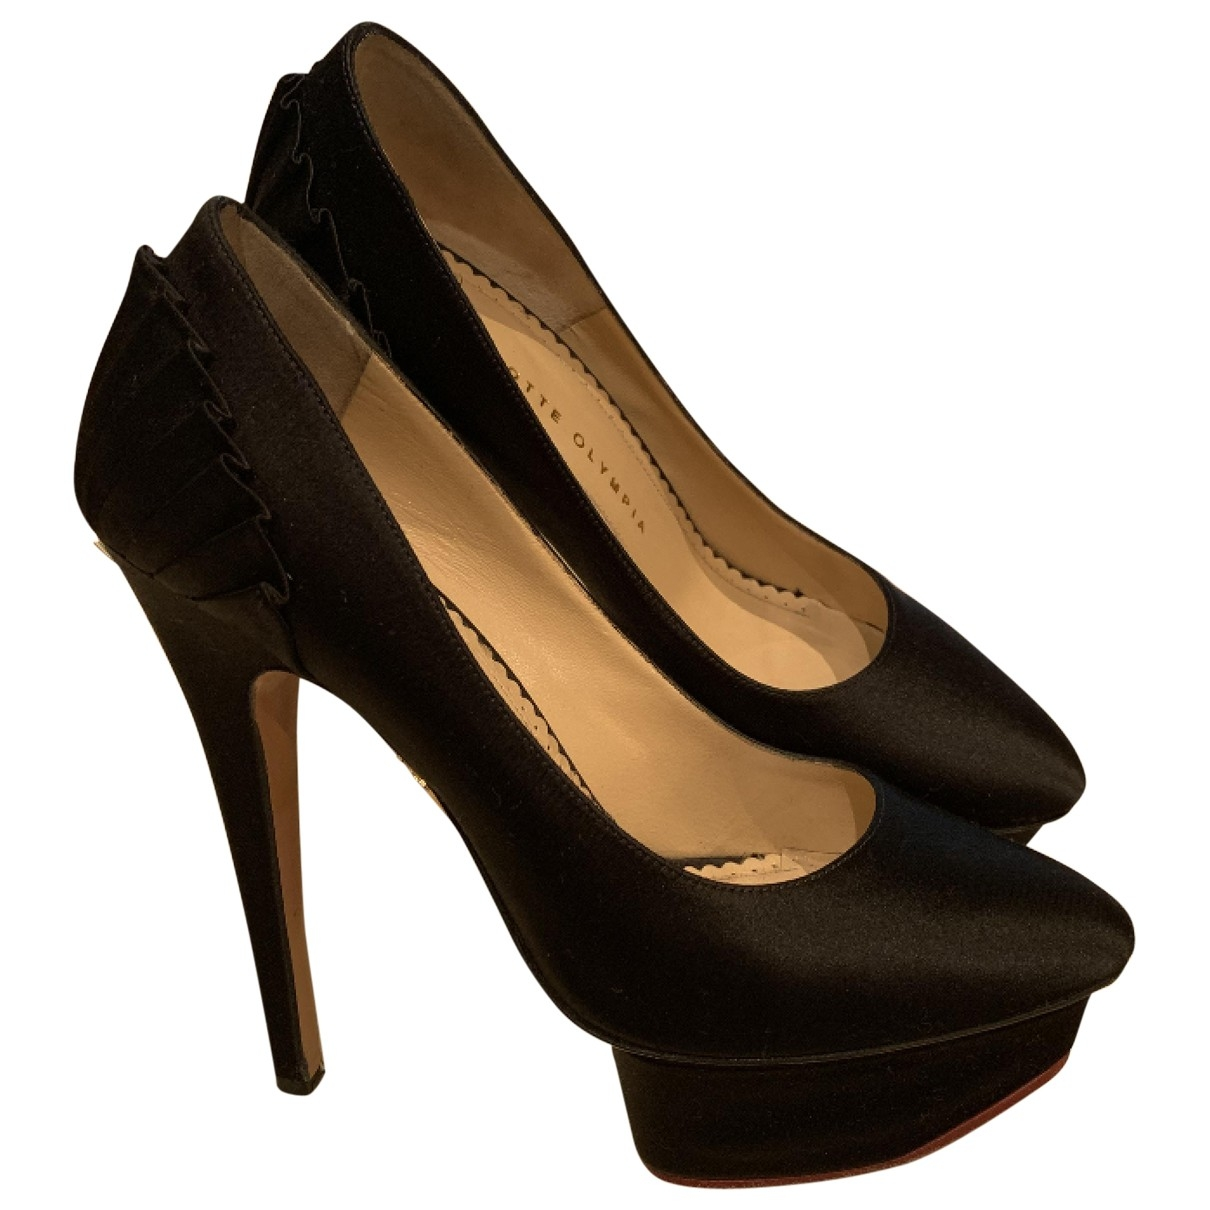 Charlotte Olympia Dolly Black Silk Heels for Women 36 EU